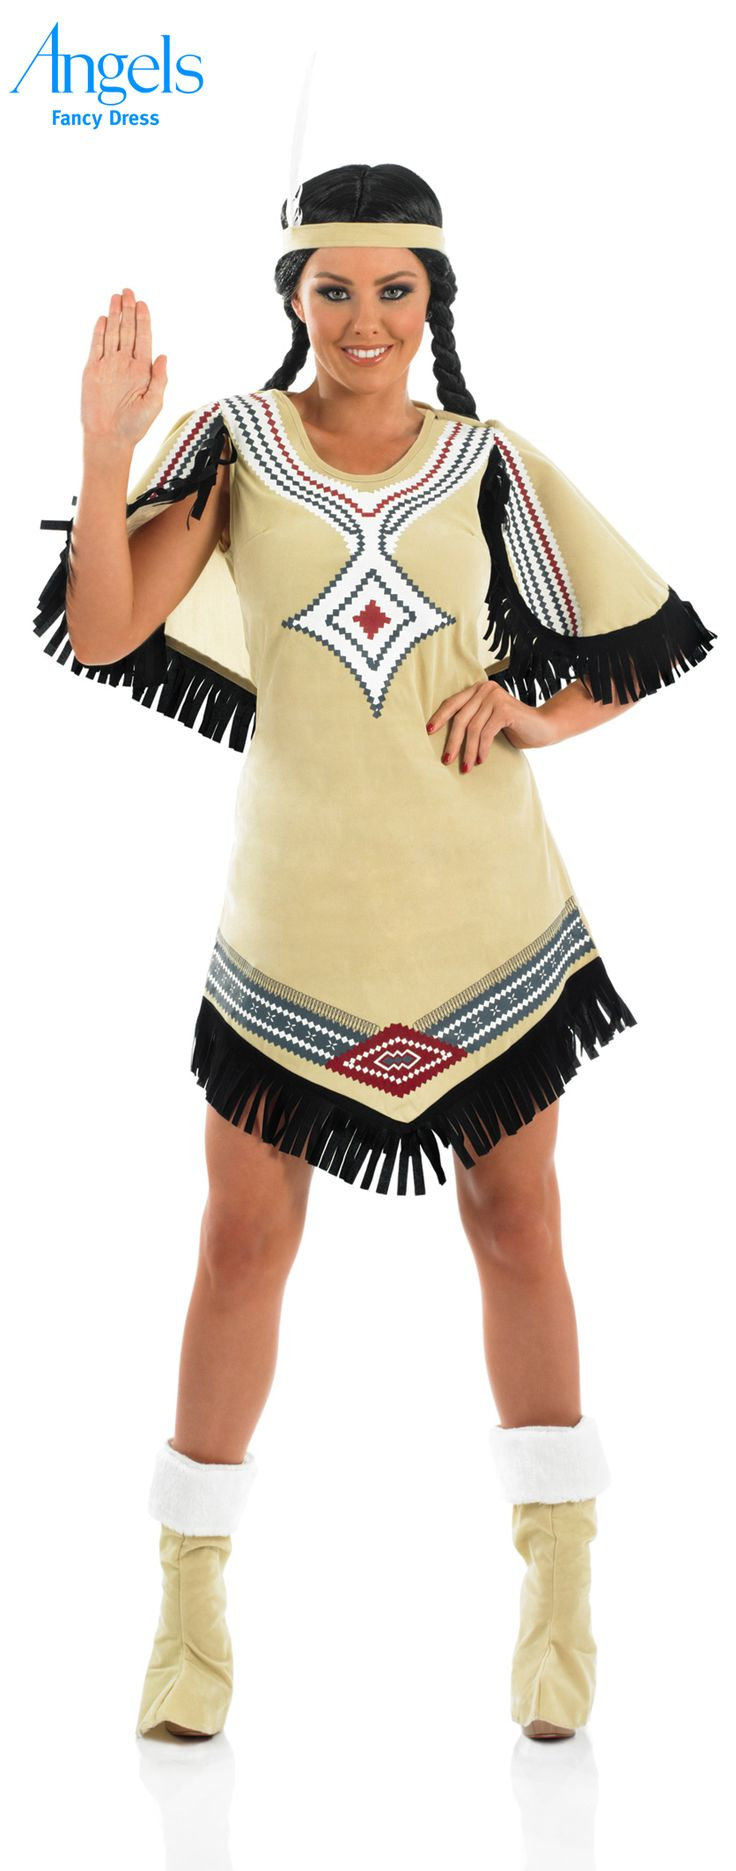 This is HOW to look fabulous and channel Native American chic in this fun Indian Scout costume (see what we did there). This pack includes a light brown fringed dress with printed detail, headband with feather and boot covers so (so you don't get cold). http://www.fancydress.com/costumes/Indian-Scout/0~4496652~284